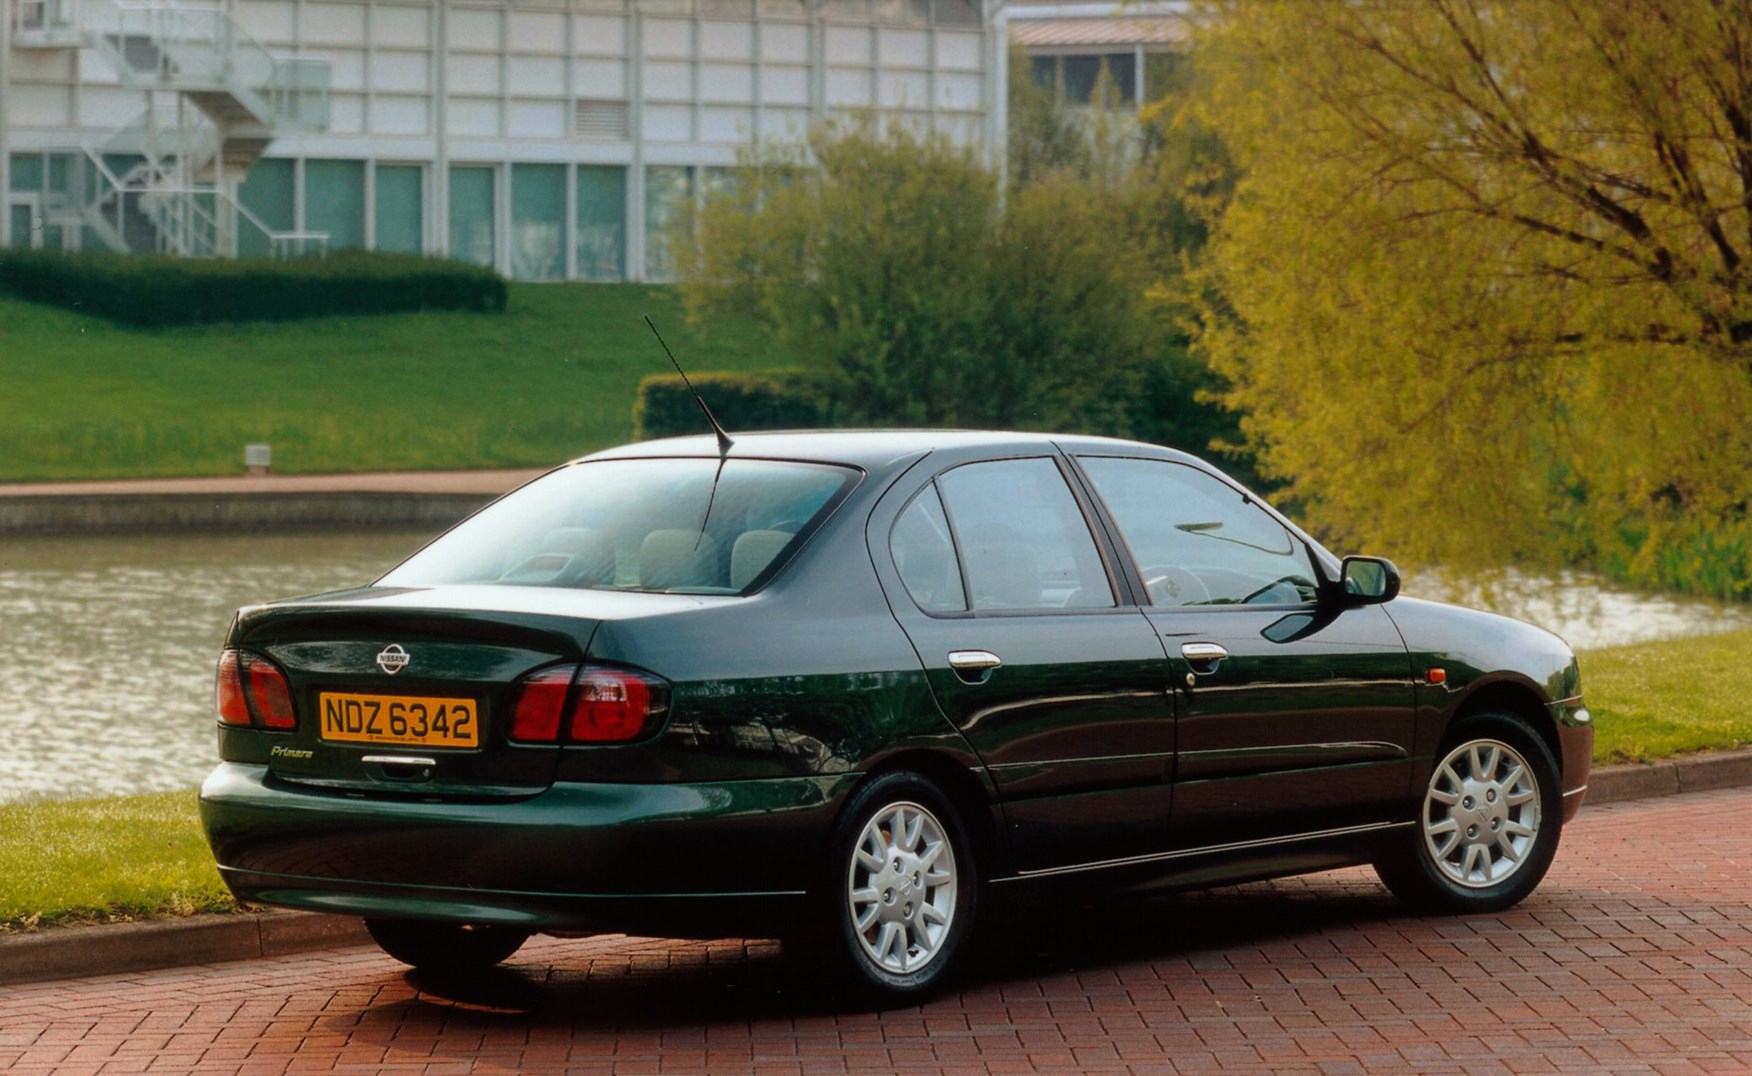 Used Bmw 5 Series For Sale >> Used Nissan Primera Saloon (1999 - 2002) Review | Parkers